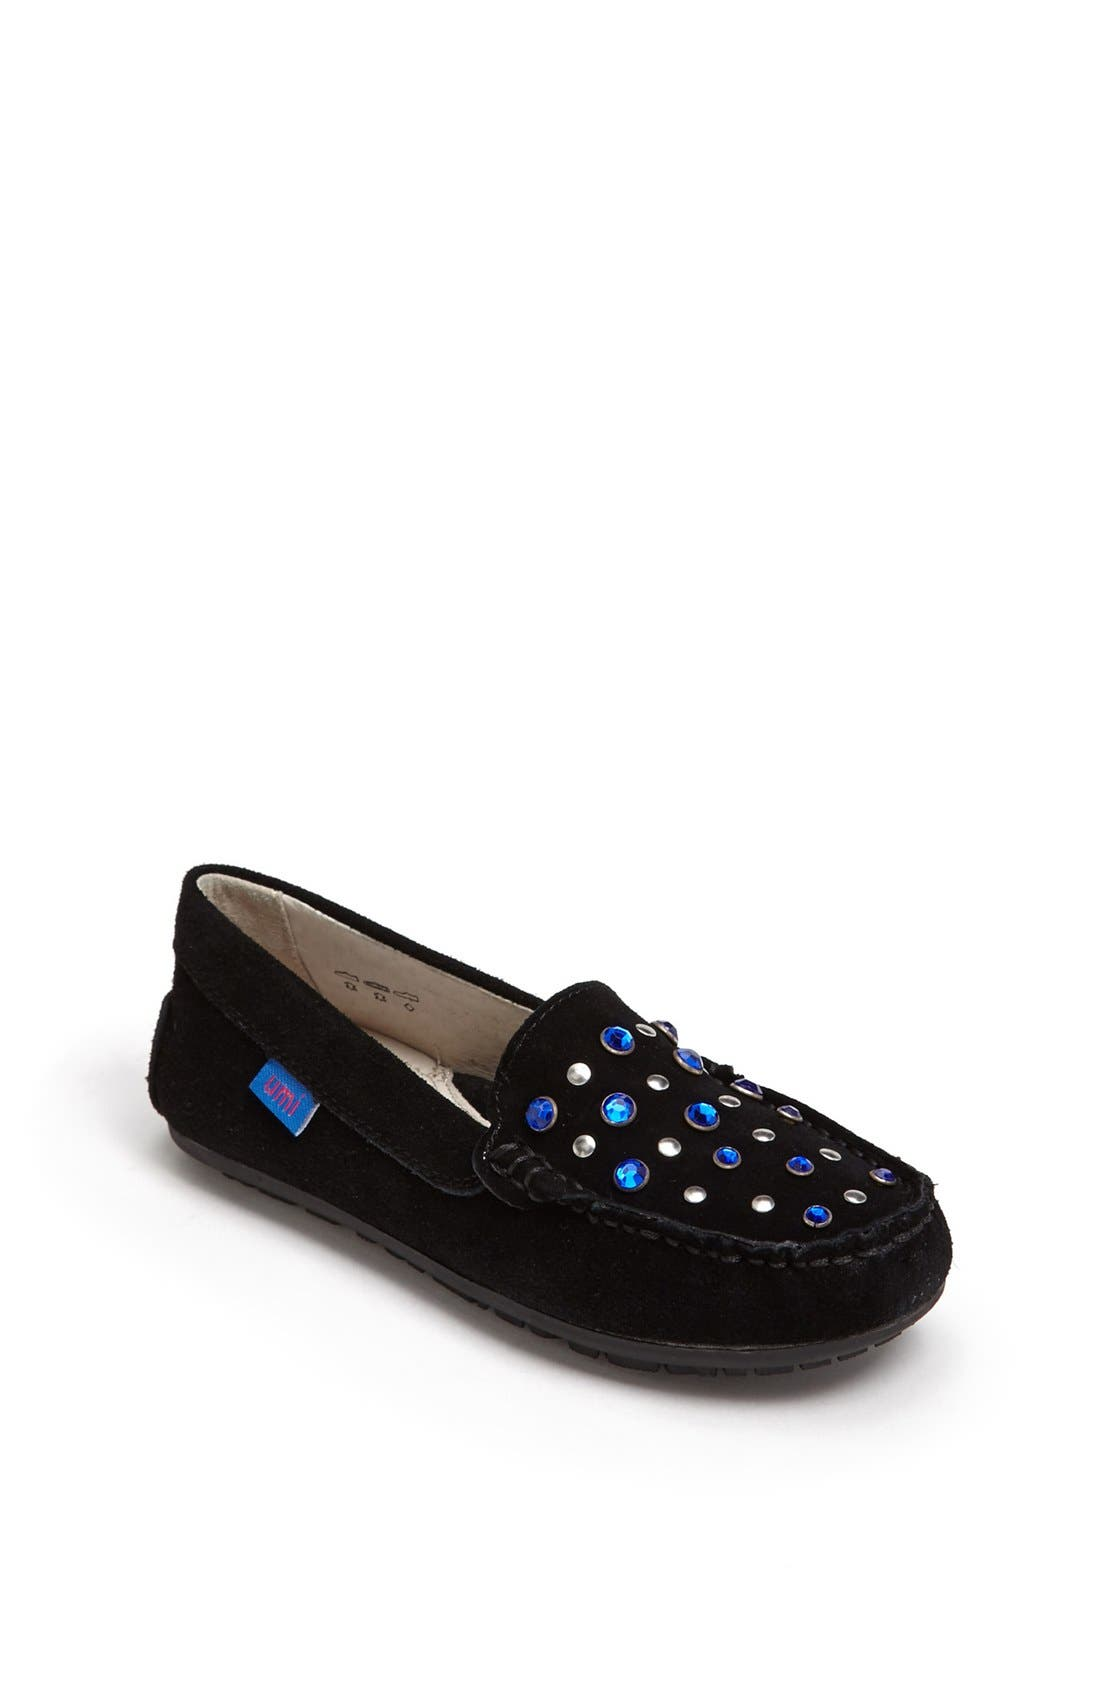 Alternate Image 1 Selected - Umi 'Morie' Loafer (Toddler, Little Kid & Big Kid)